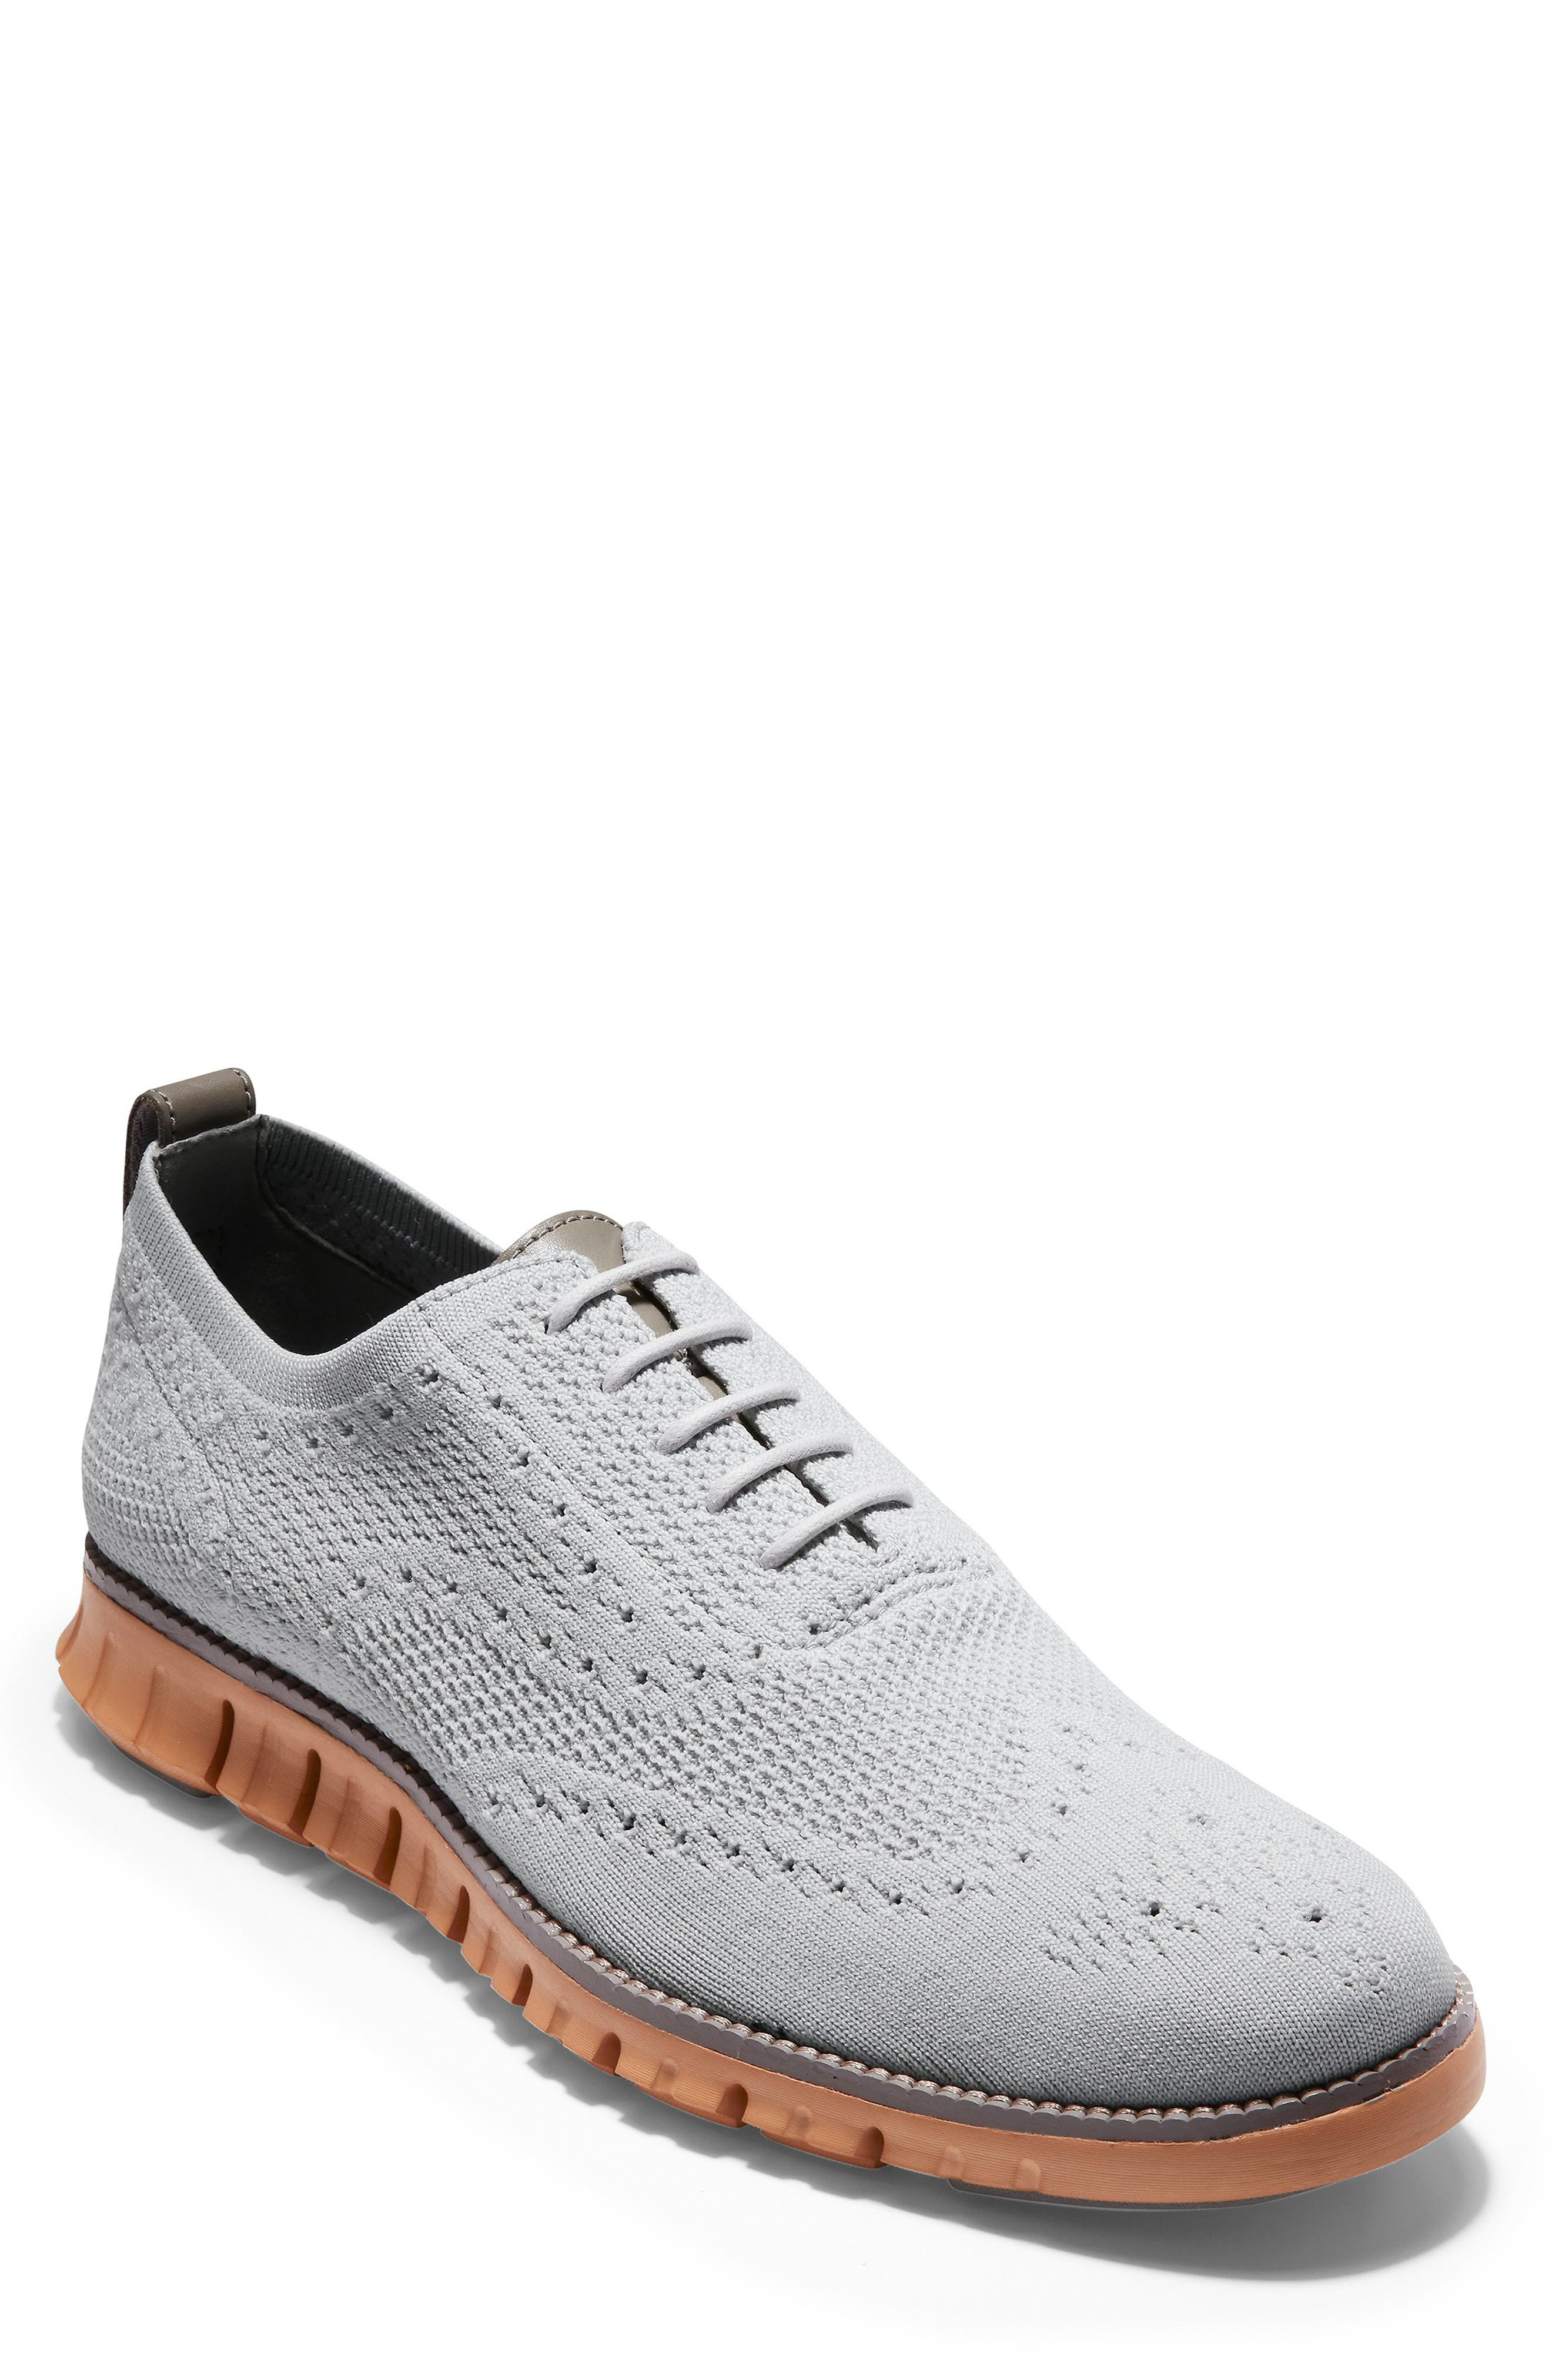 ZeroGrand Stitchlite Oxford, Main, color, HARBOR MIST